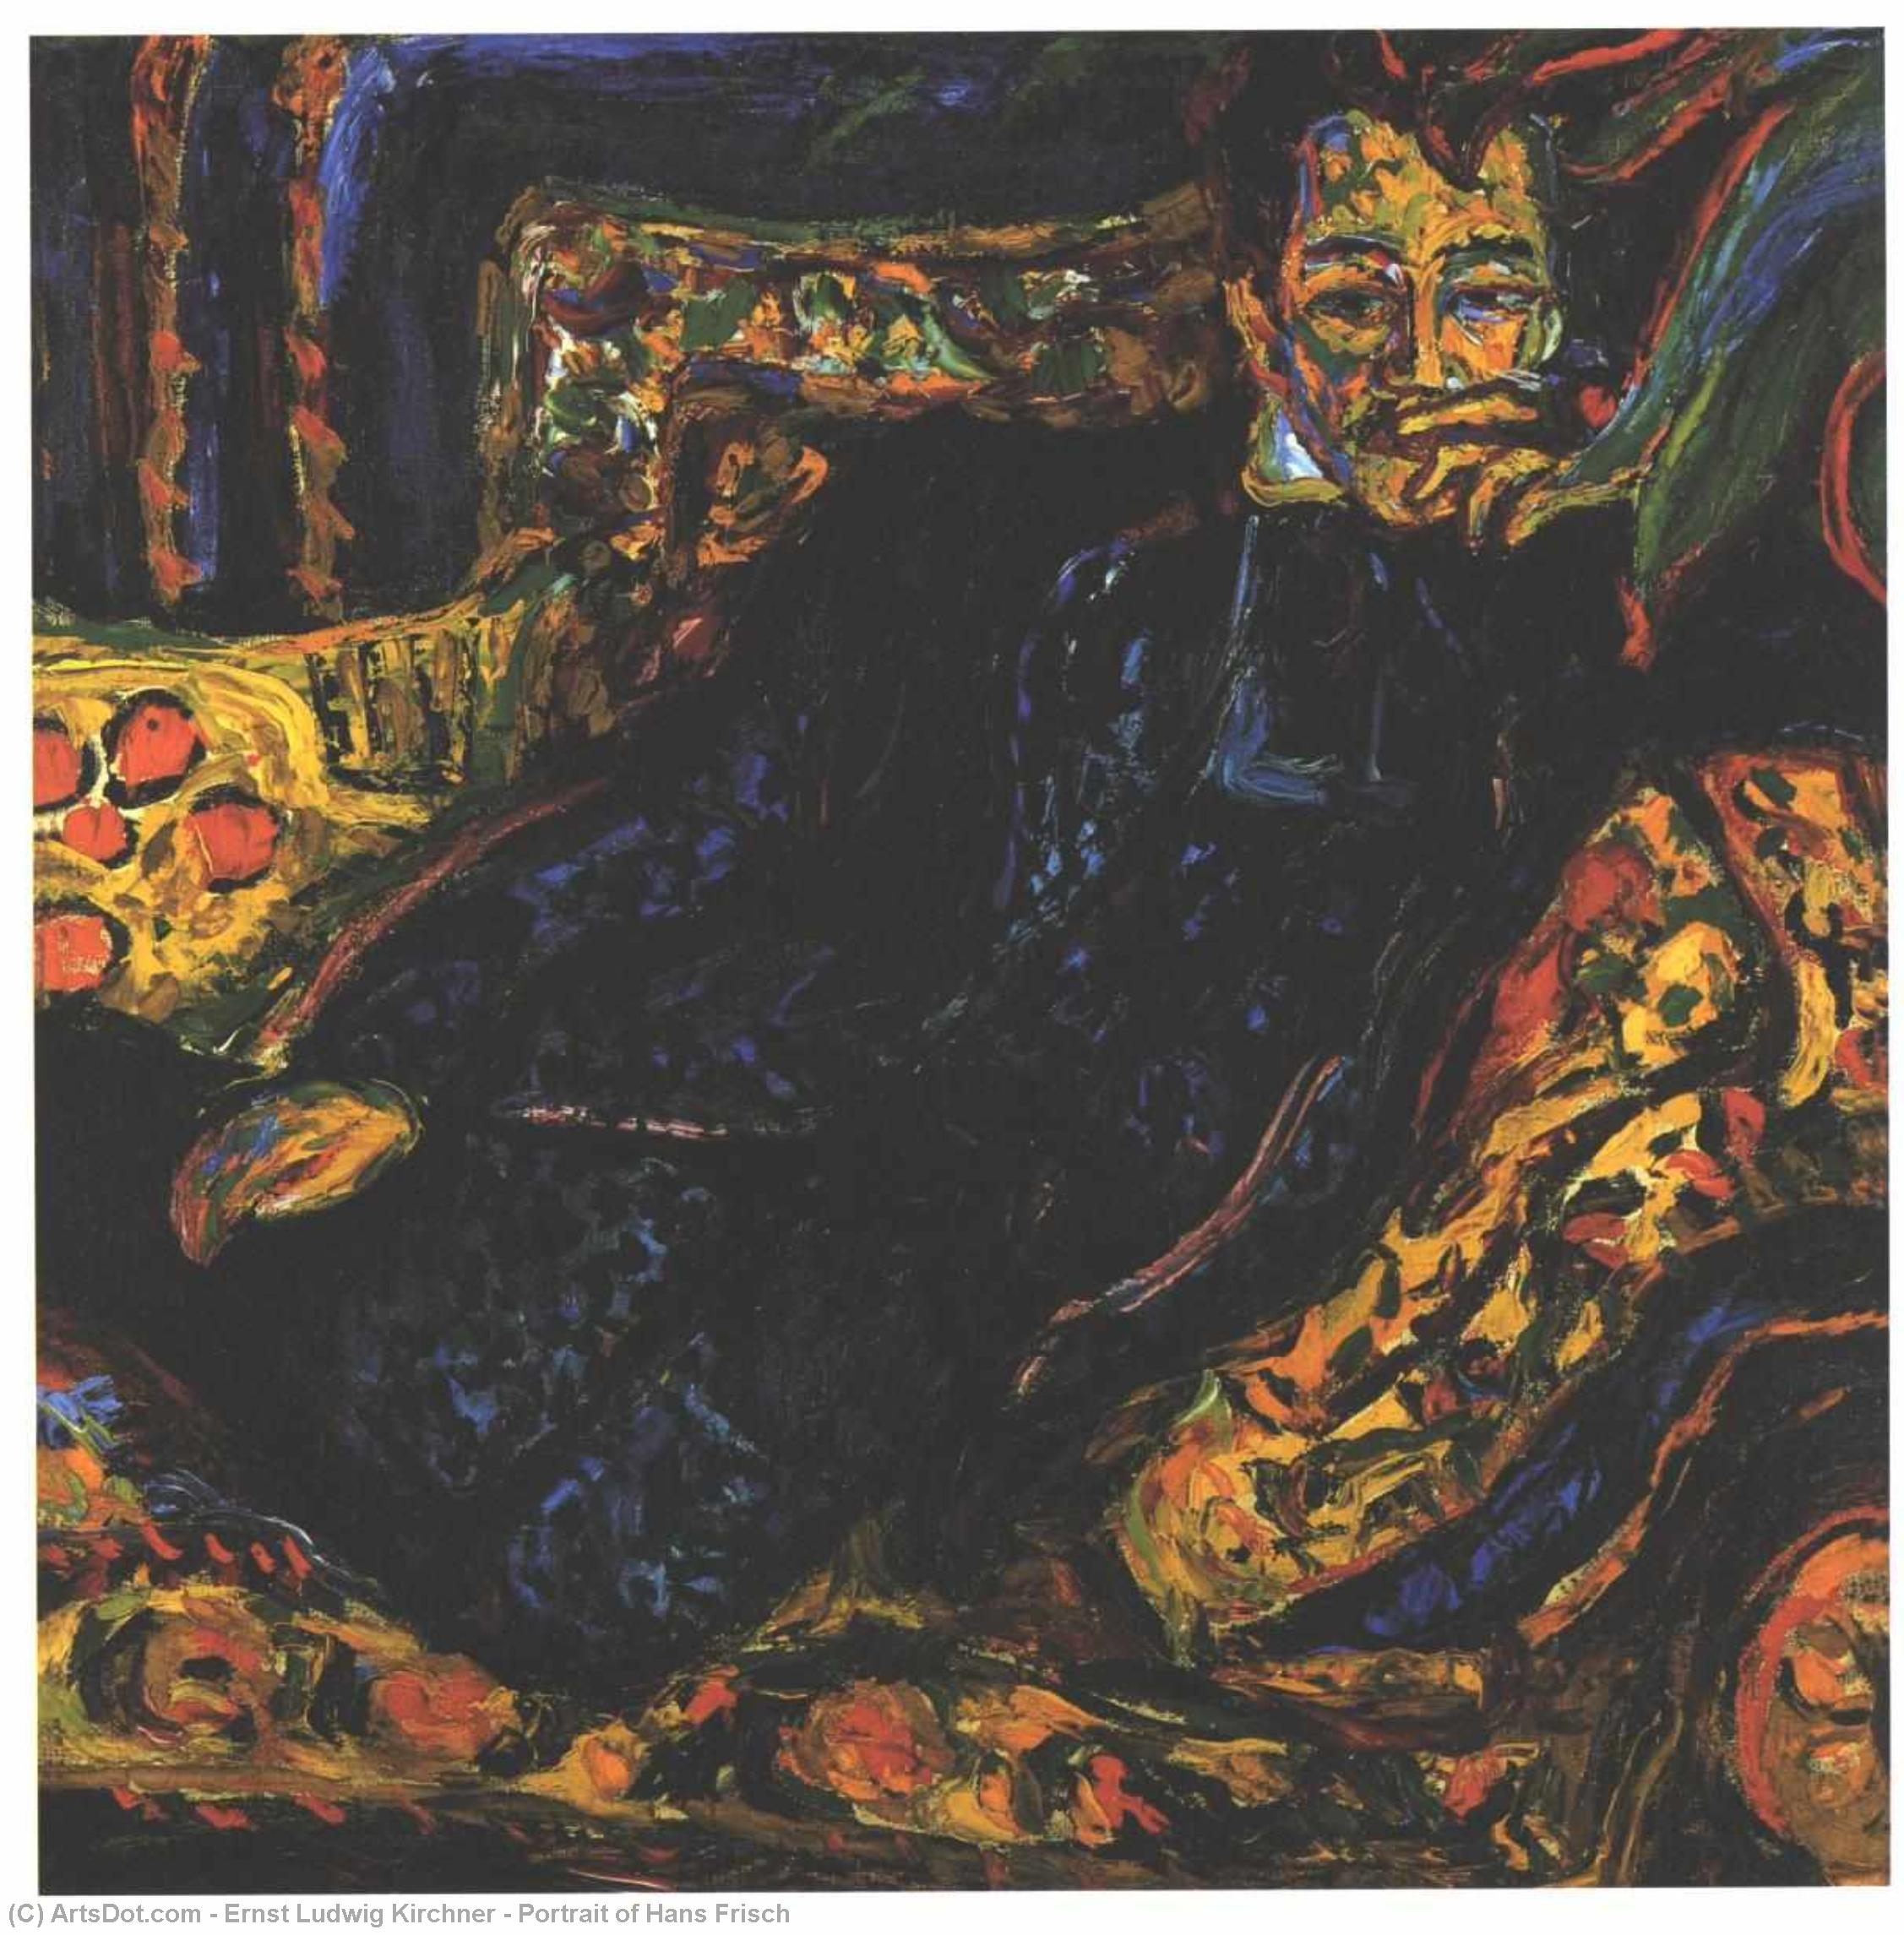 Order Art Reproduction : Portrait of Hans Frisch, 1917 by Ernst Ludwig Kirchner (1880-1938, Germany) | ArtsDot.com